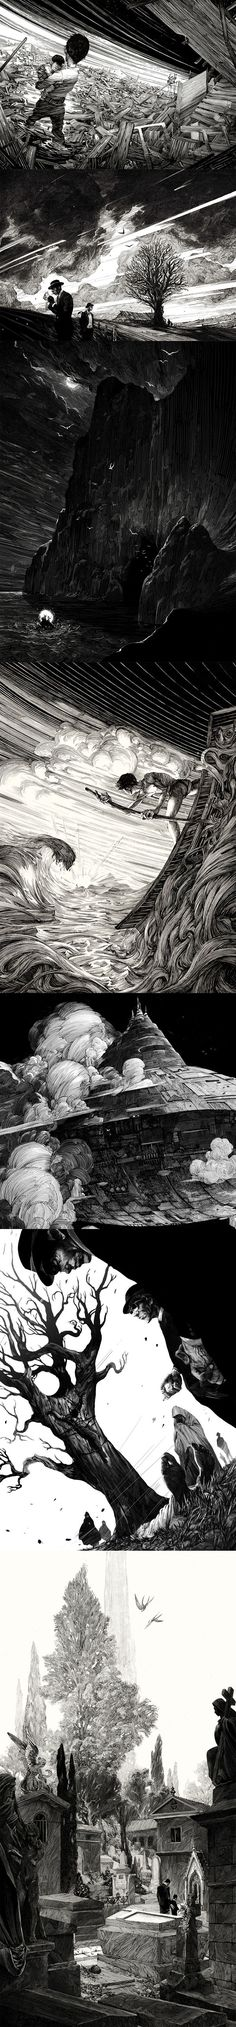 Illustration | Pen & Ink Drawing by Nicolas Delort in Paris on scratchboard